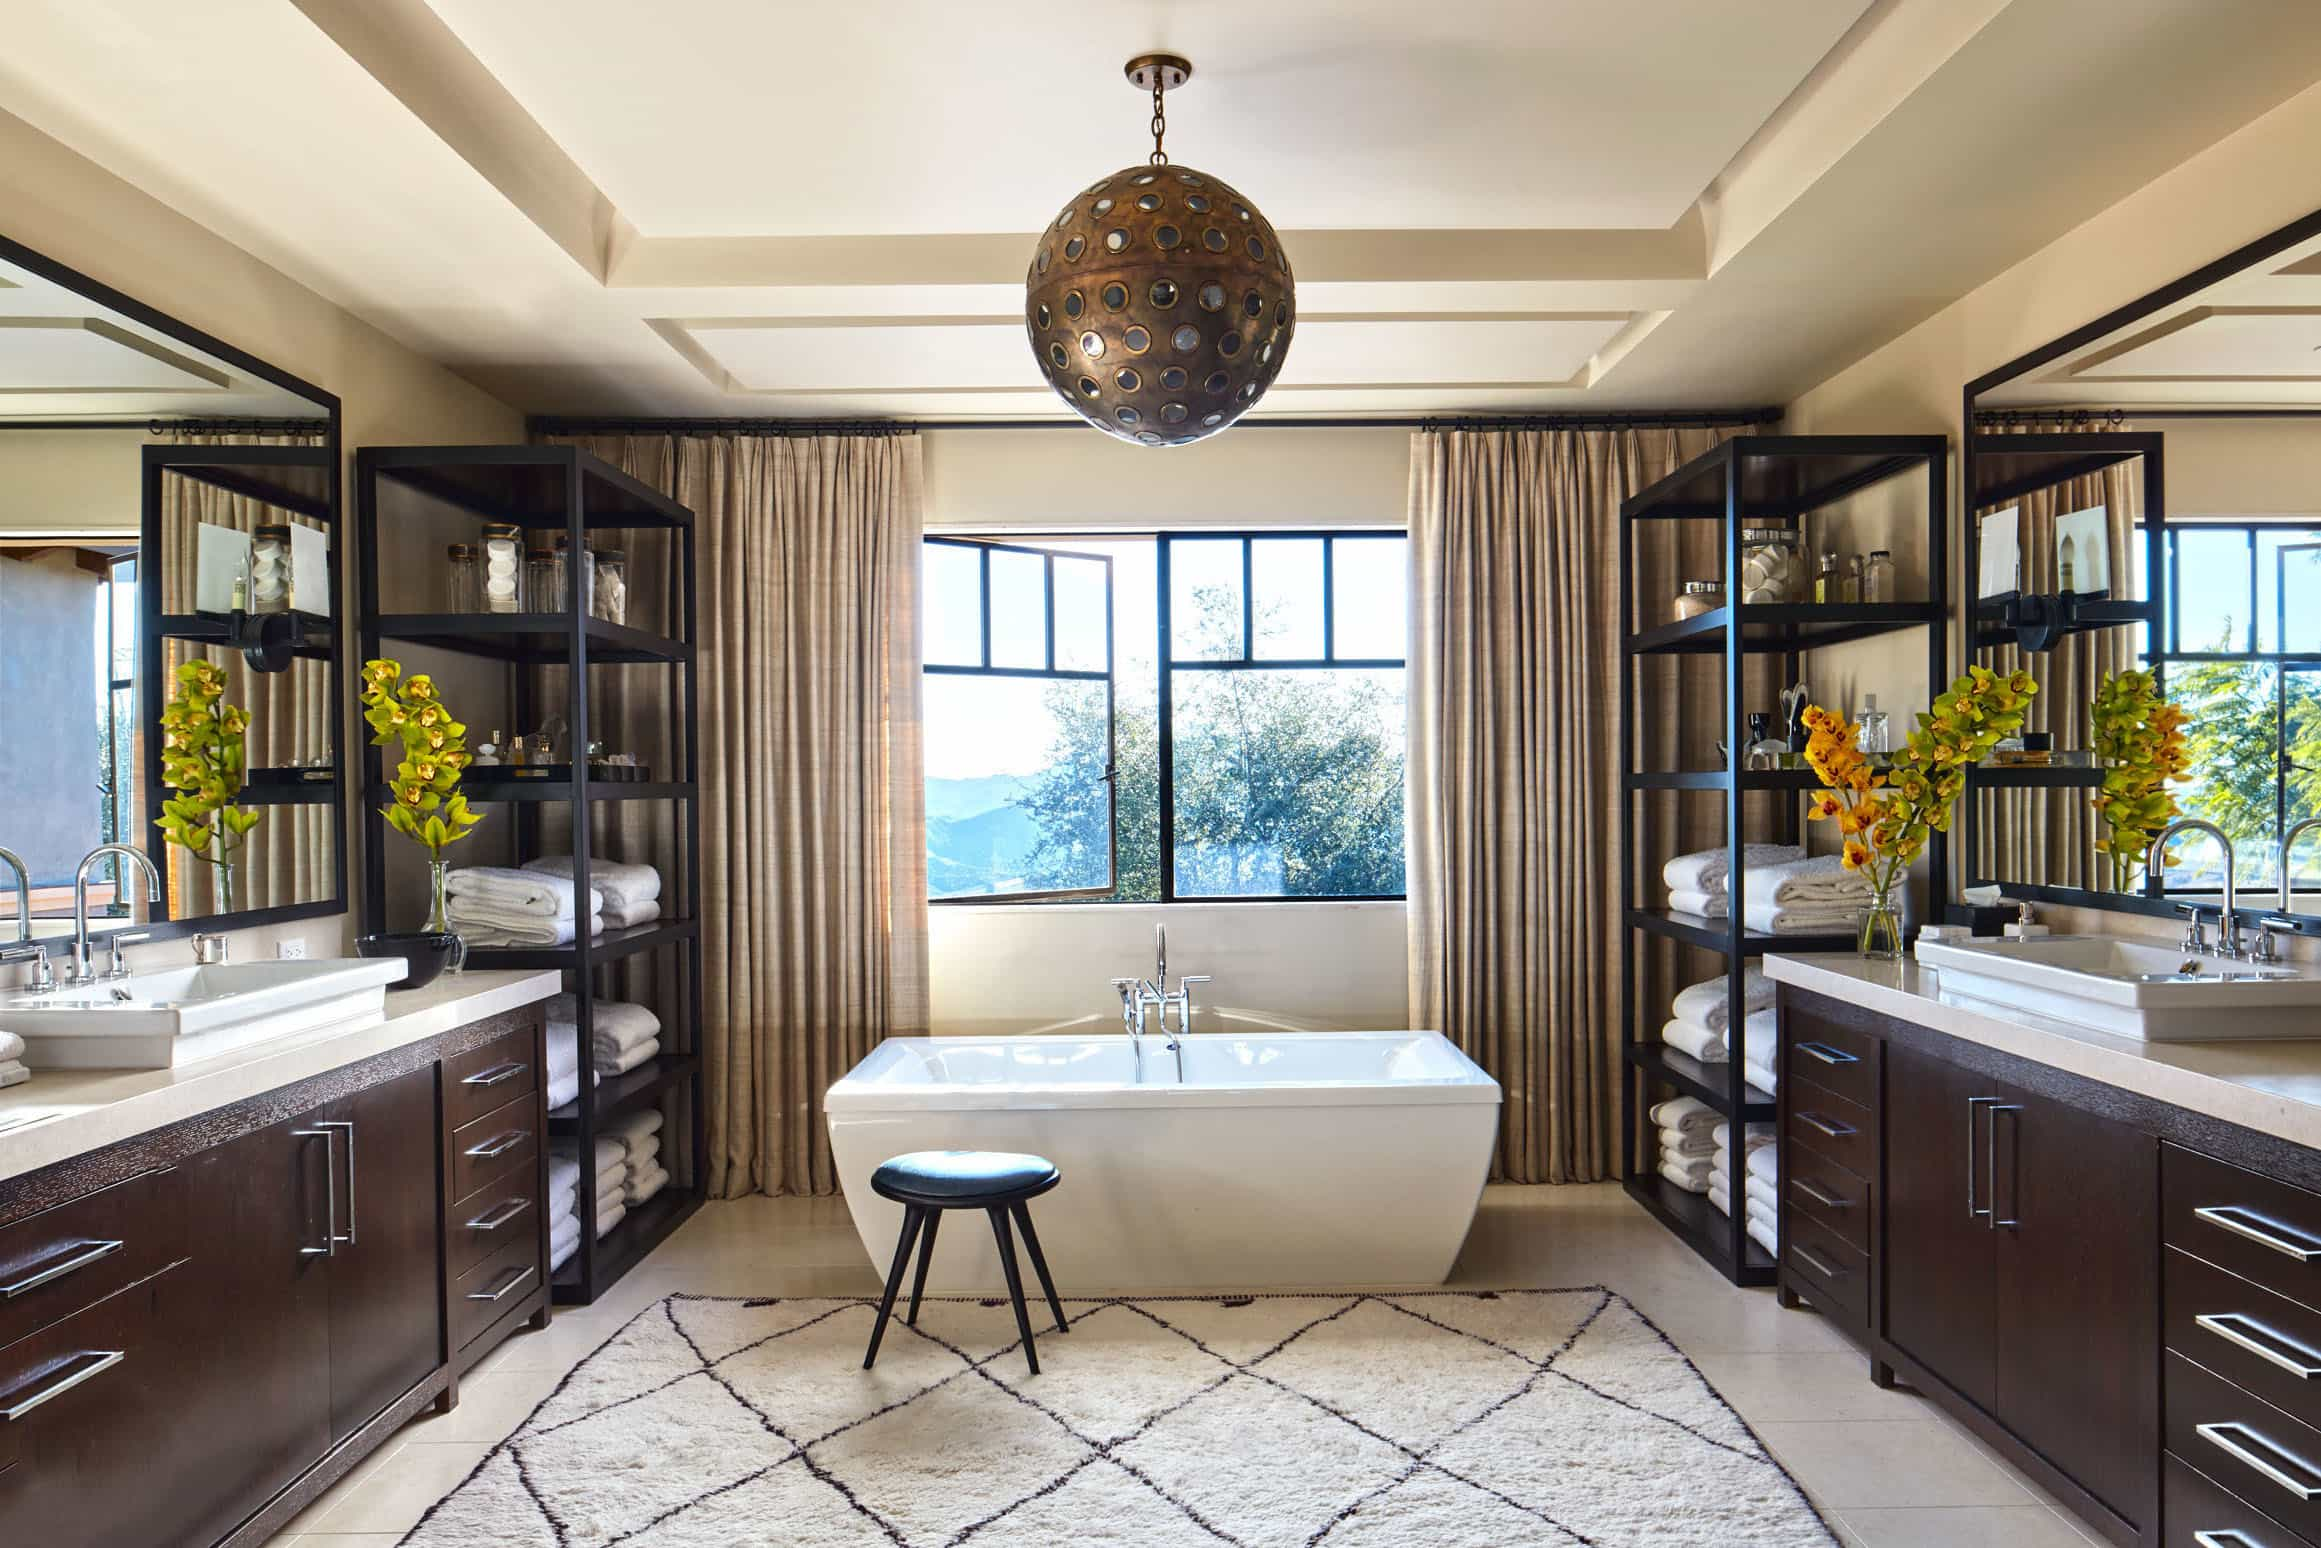 Contemporary Celebrity Inspired Bathroom Interior (Image 9 of 20)